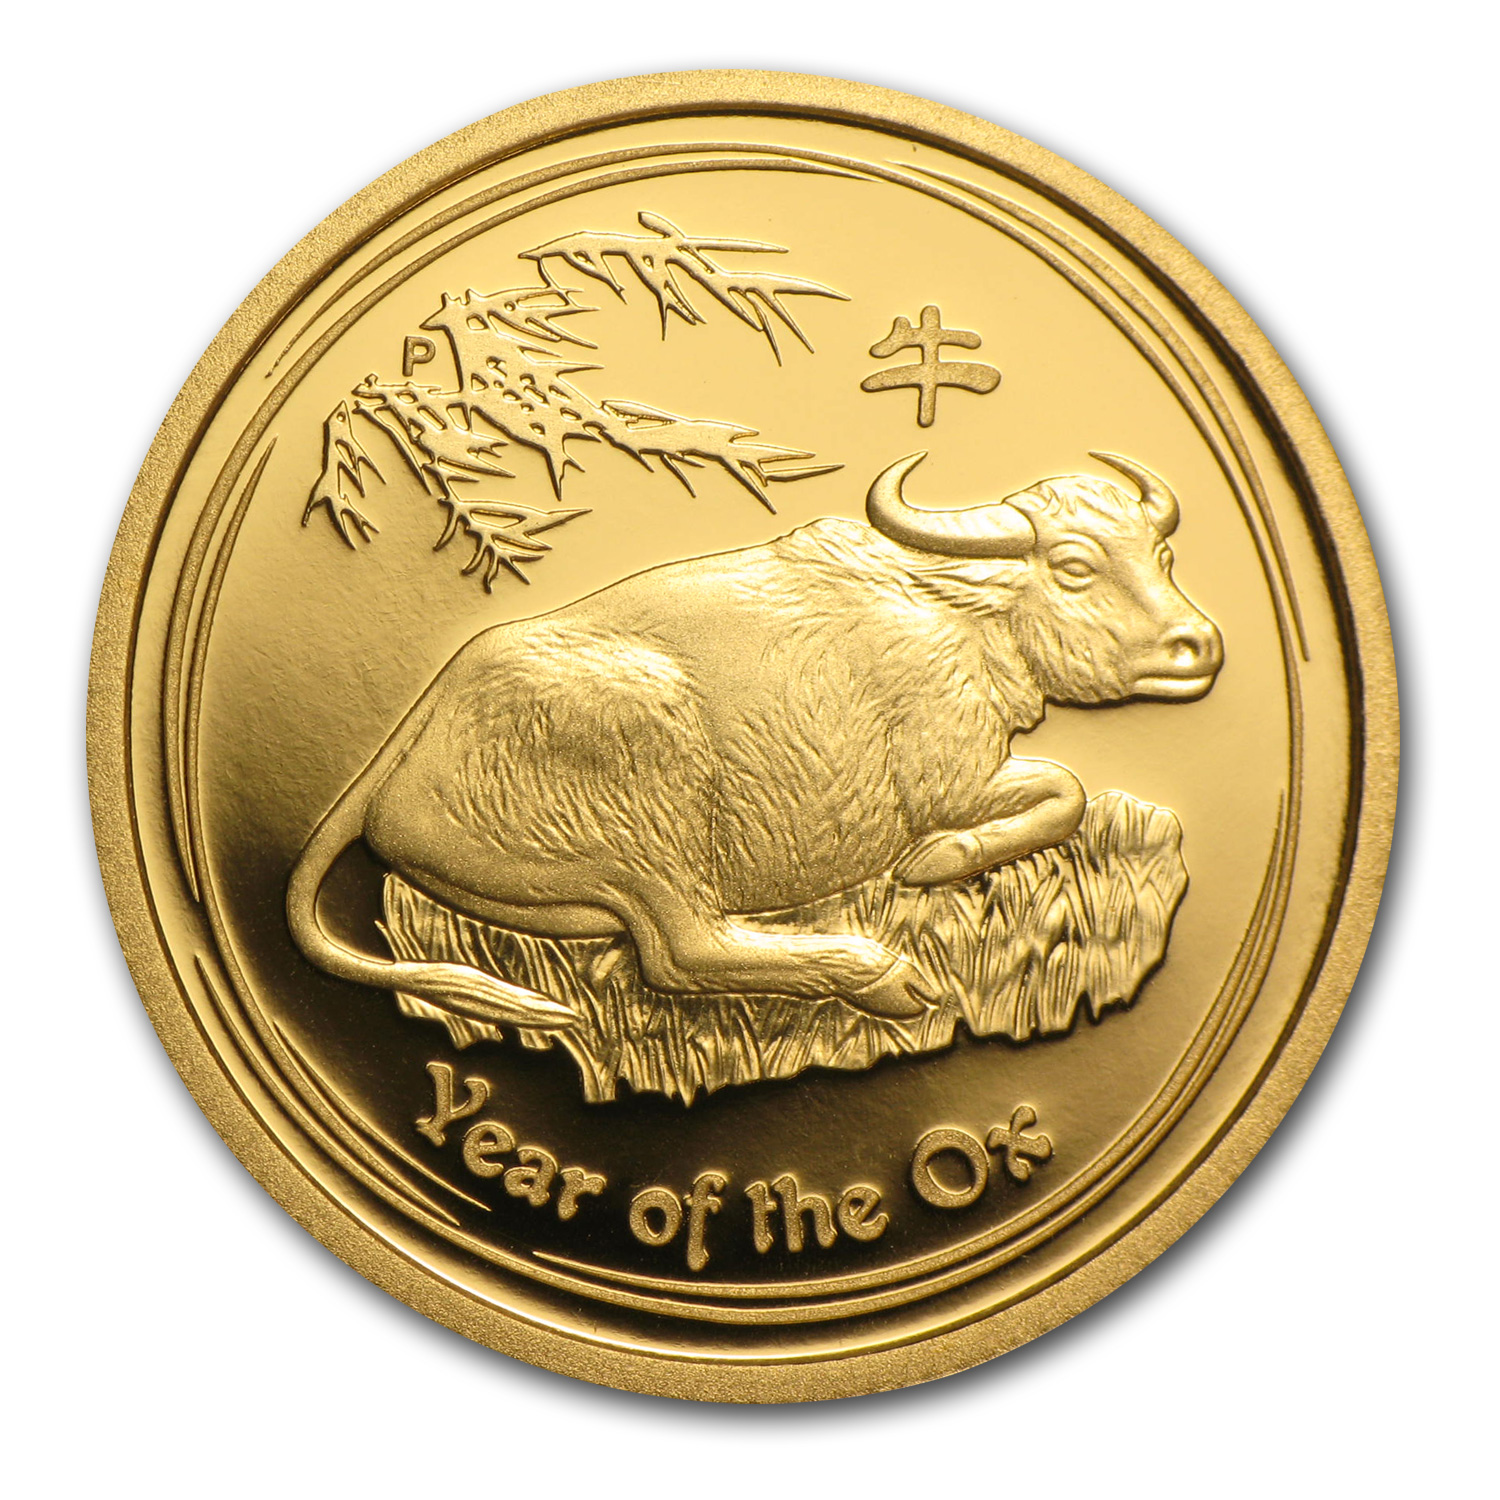 2009 1/4 oz Proof Gold Lunar Year of the Ox (Series II)